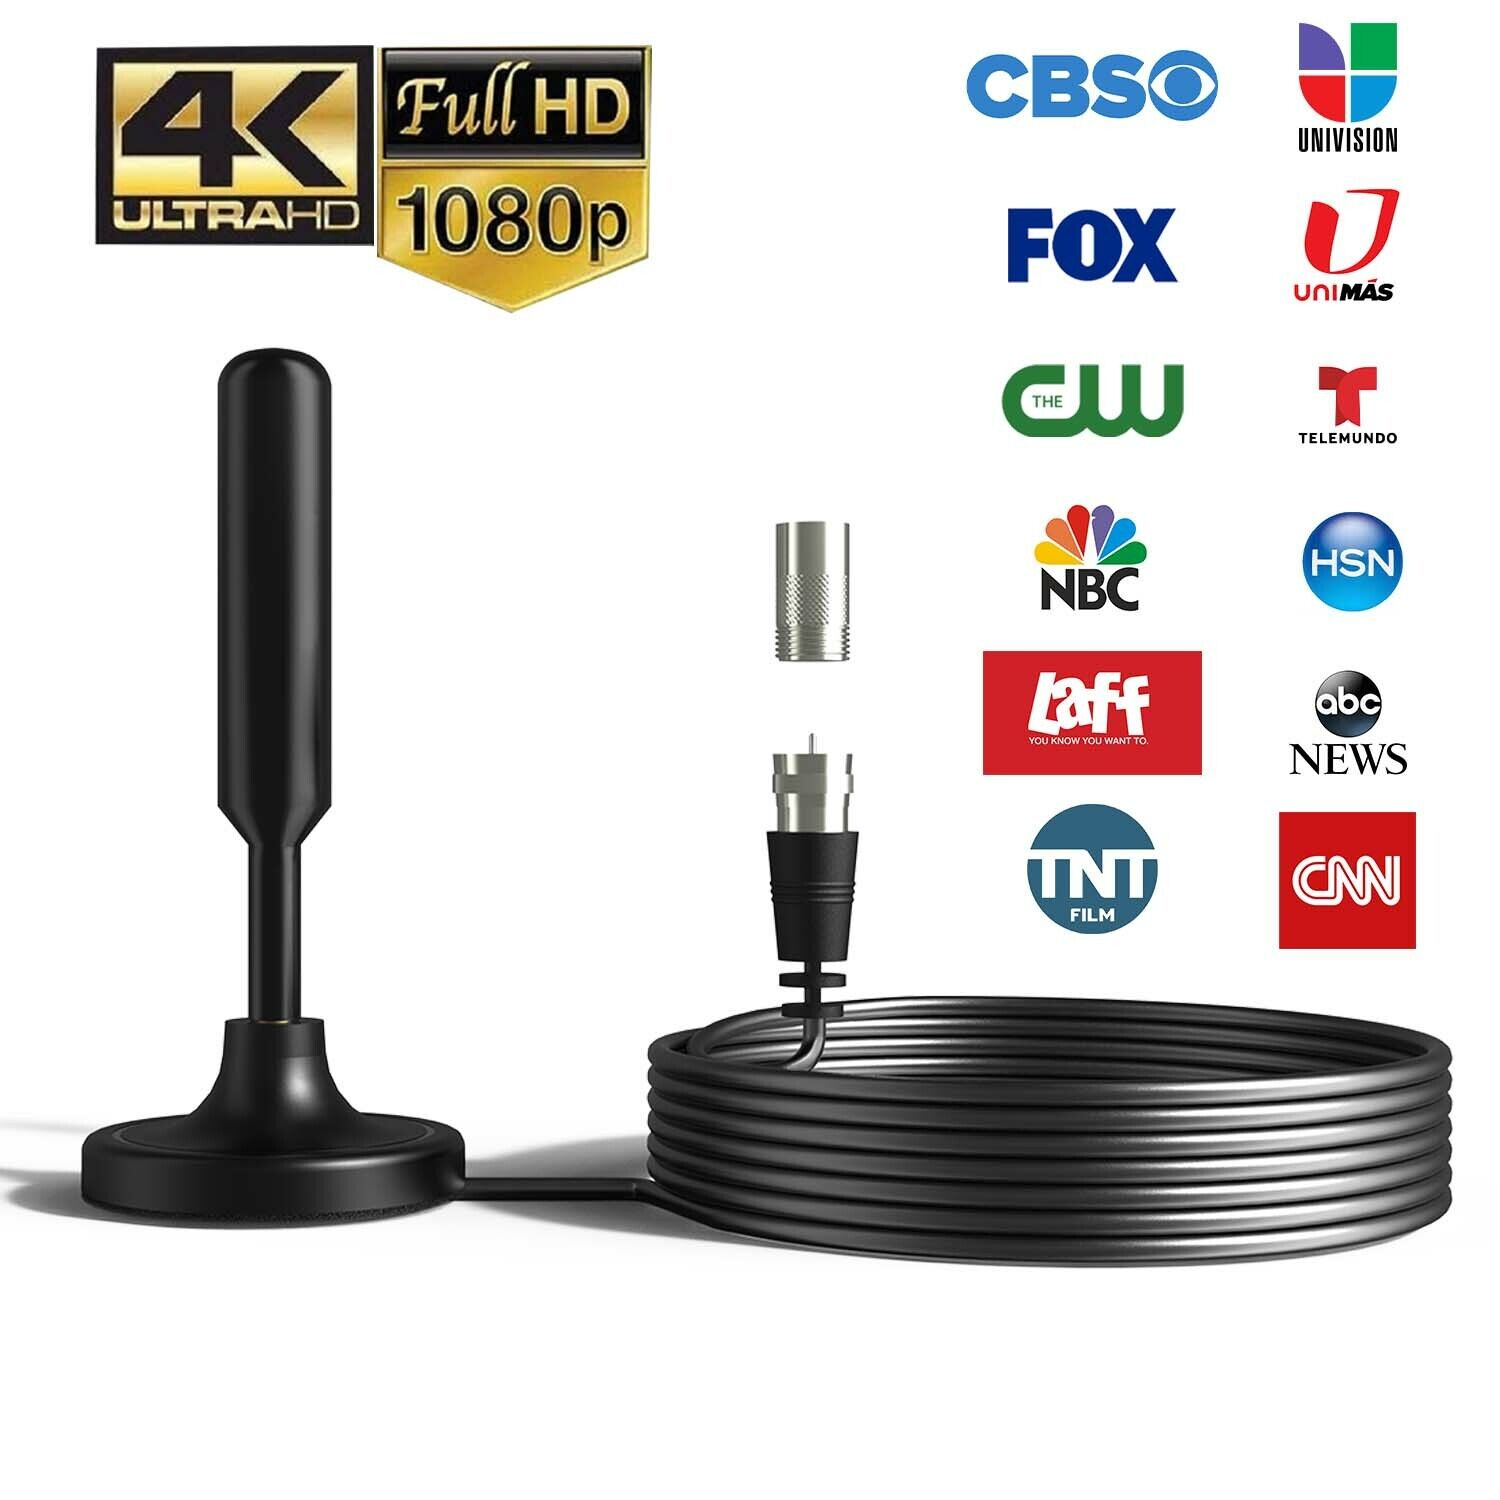 Upgraded TV Antenna HDTV Amplified Digital TV Antenna 4K 1080P Long Range Indoor. Available Now for 9.95